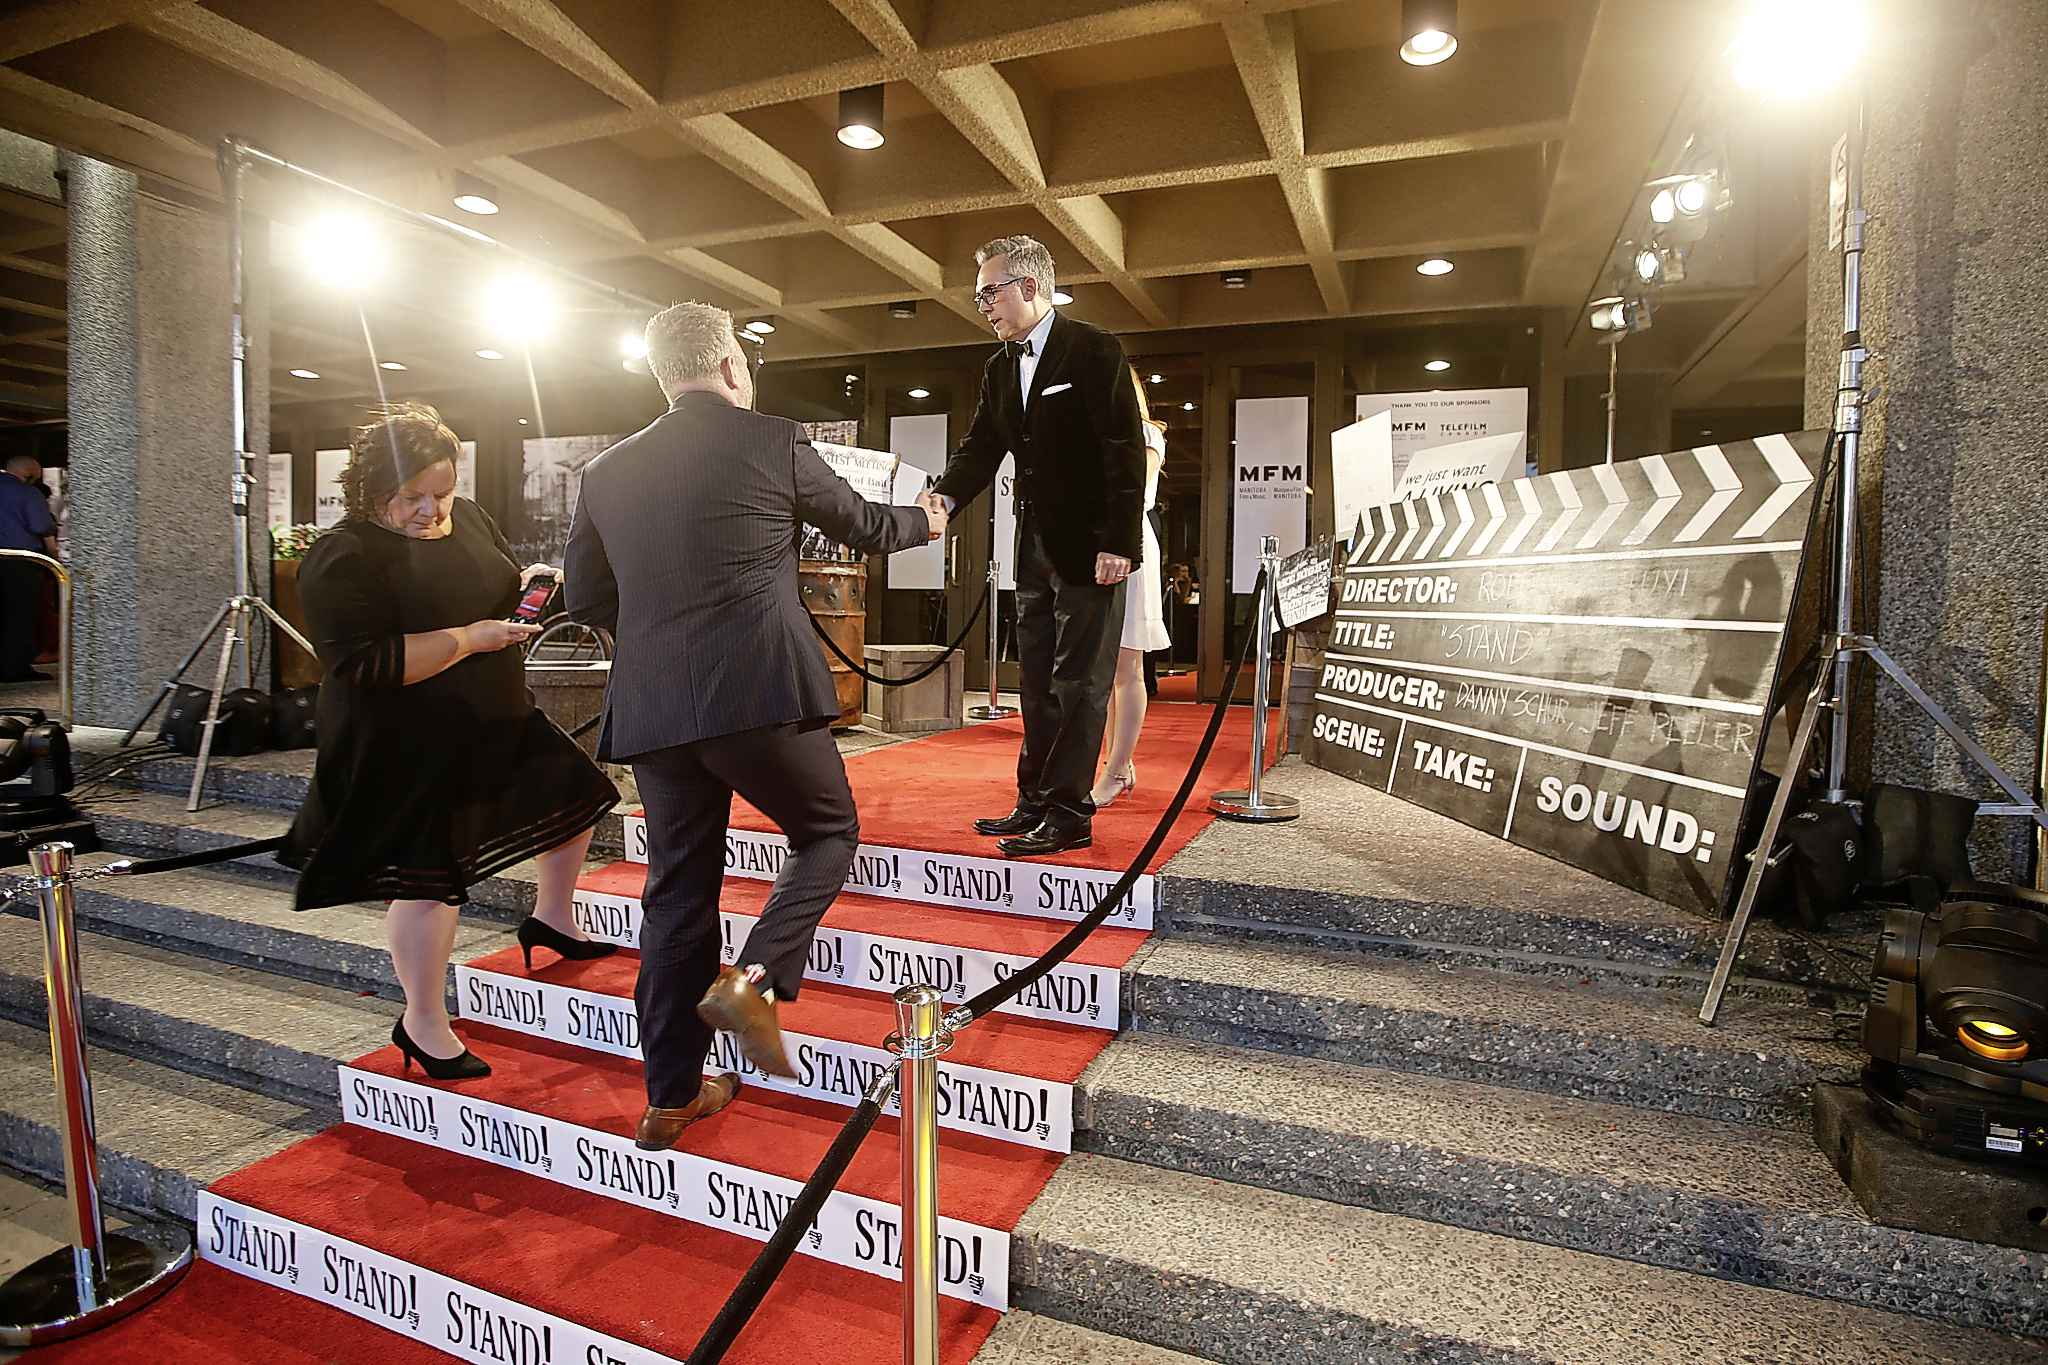 Producer Jeff Peeler welcomes a guest on the red carpet at the premiére of Stand! at the Centennial Concert Hall in Winnipeg on Tuesday. (John Woods / Winnipeg Free Press)